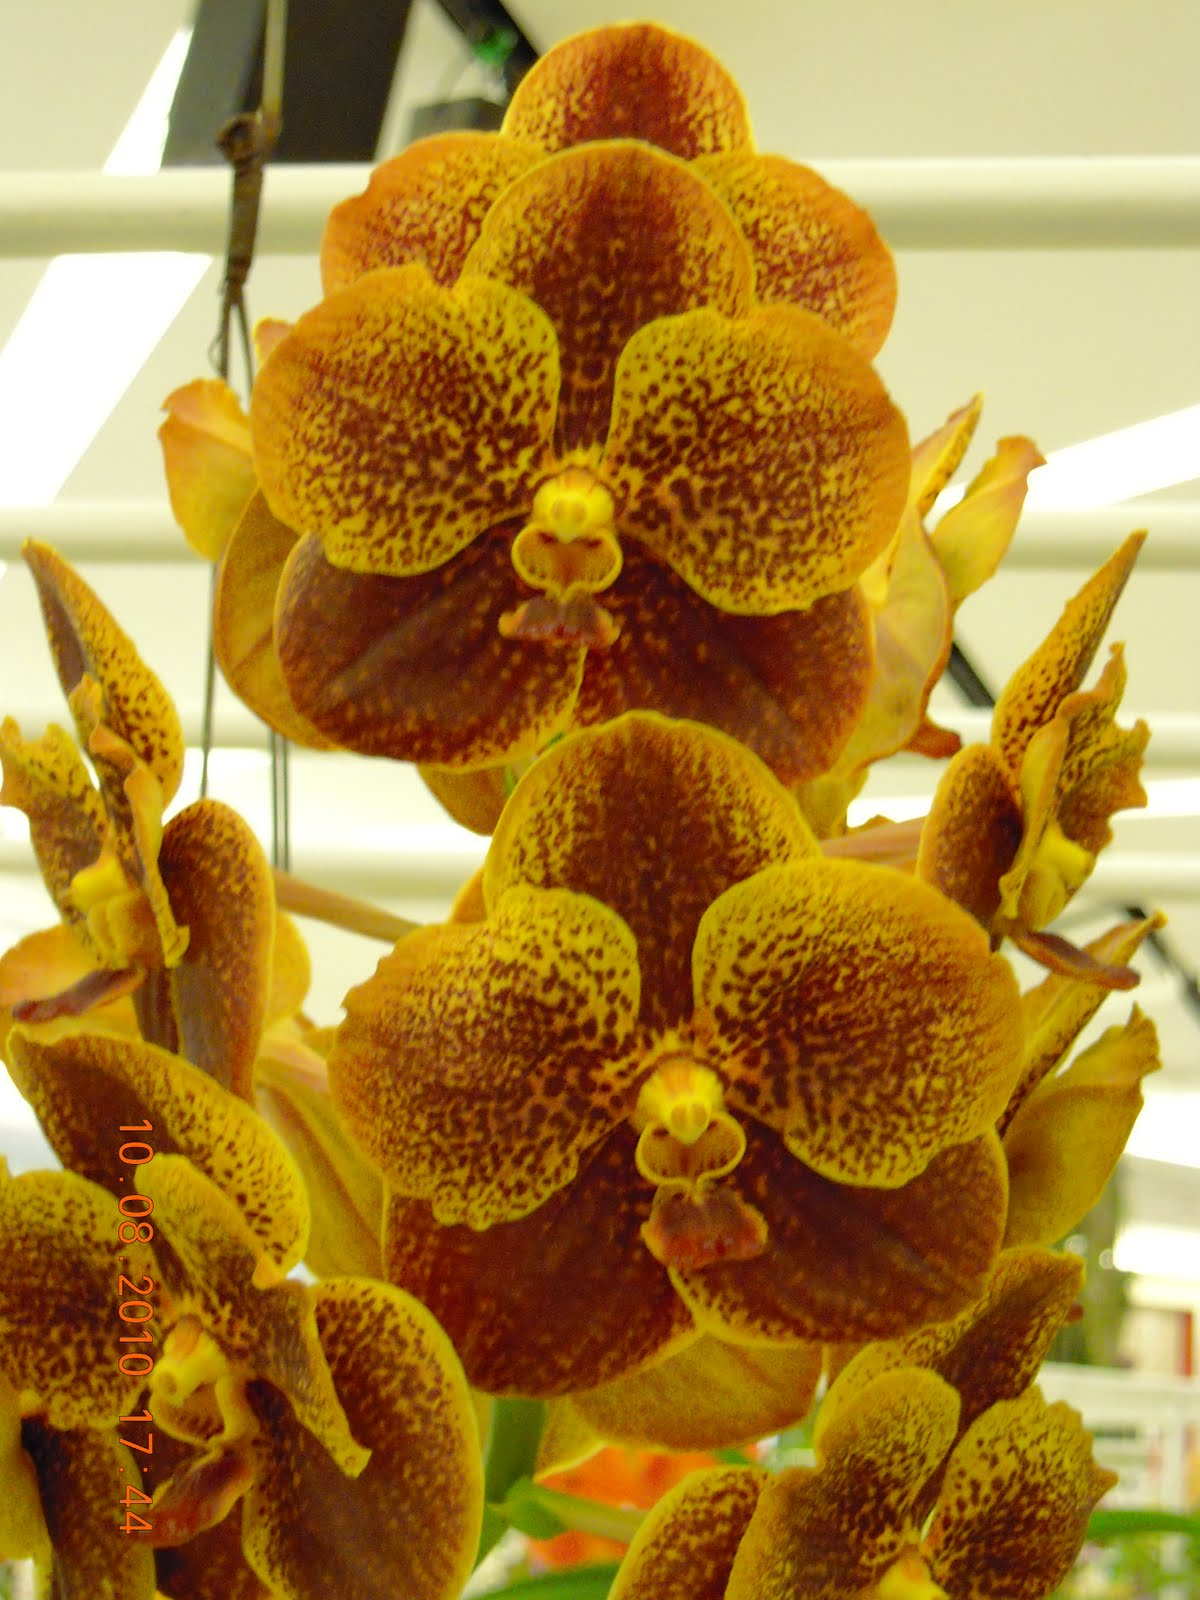 Green And Brown Living Room Decor: UMI & TSURU: Green And Brown Orchid Blooms